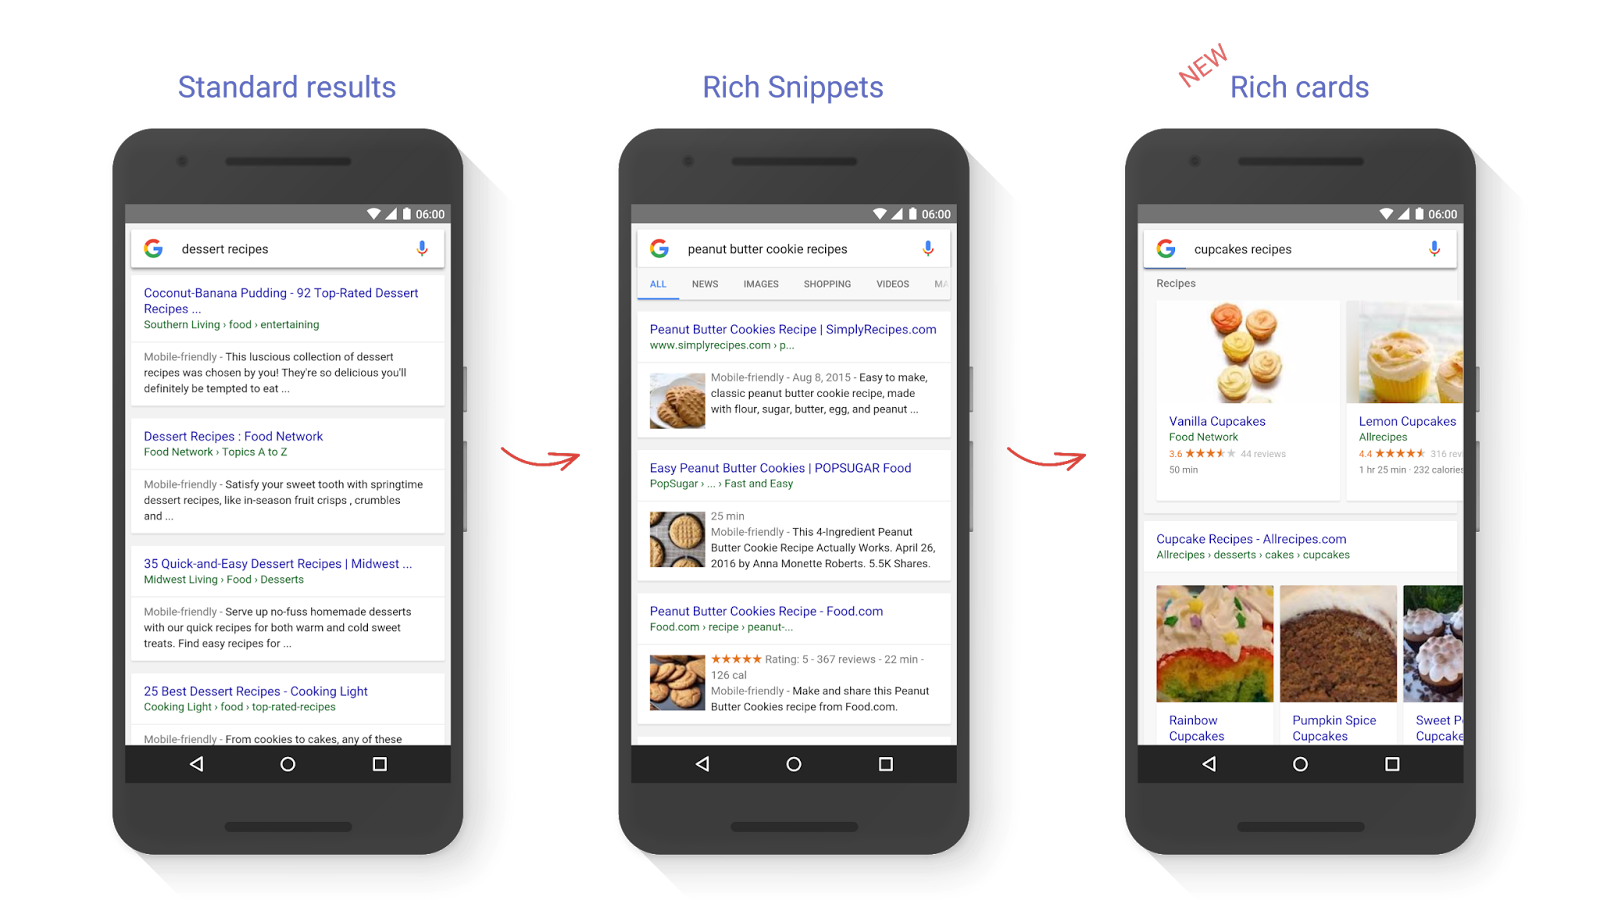 Google Standard Results vs Rich Snippets and Rich Cards